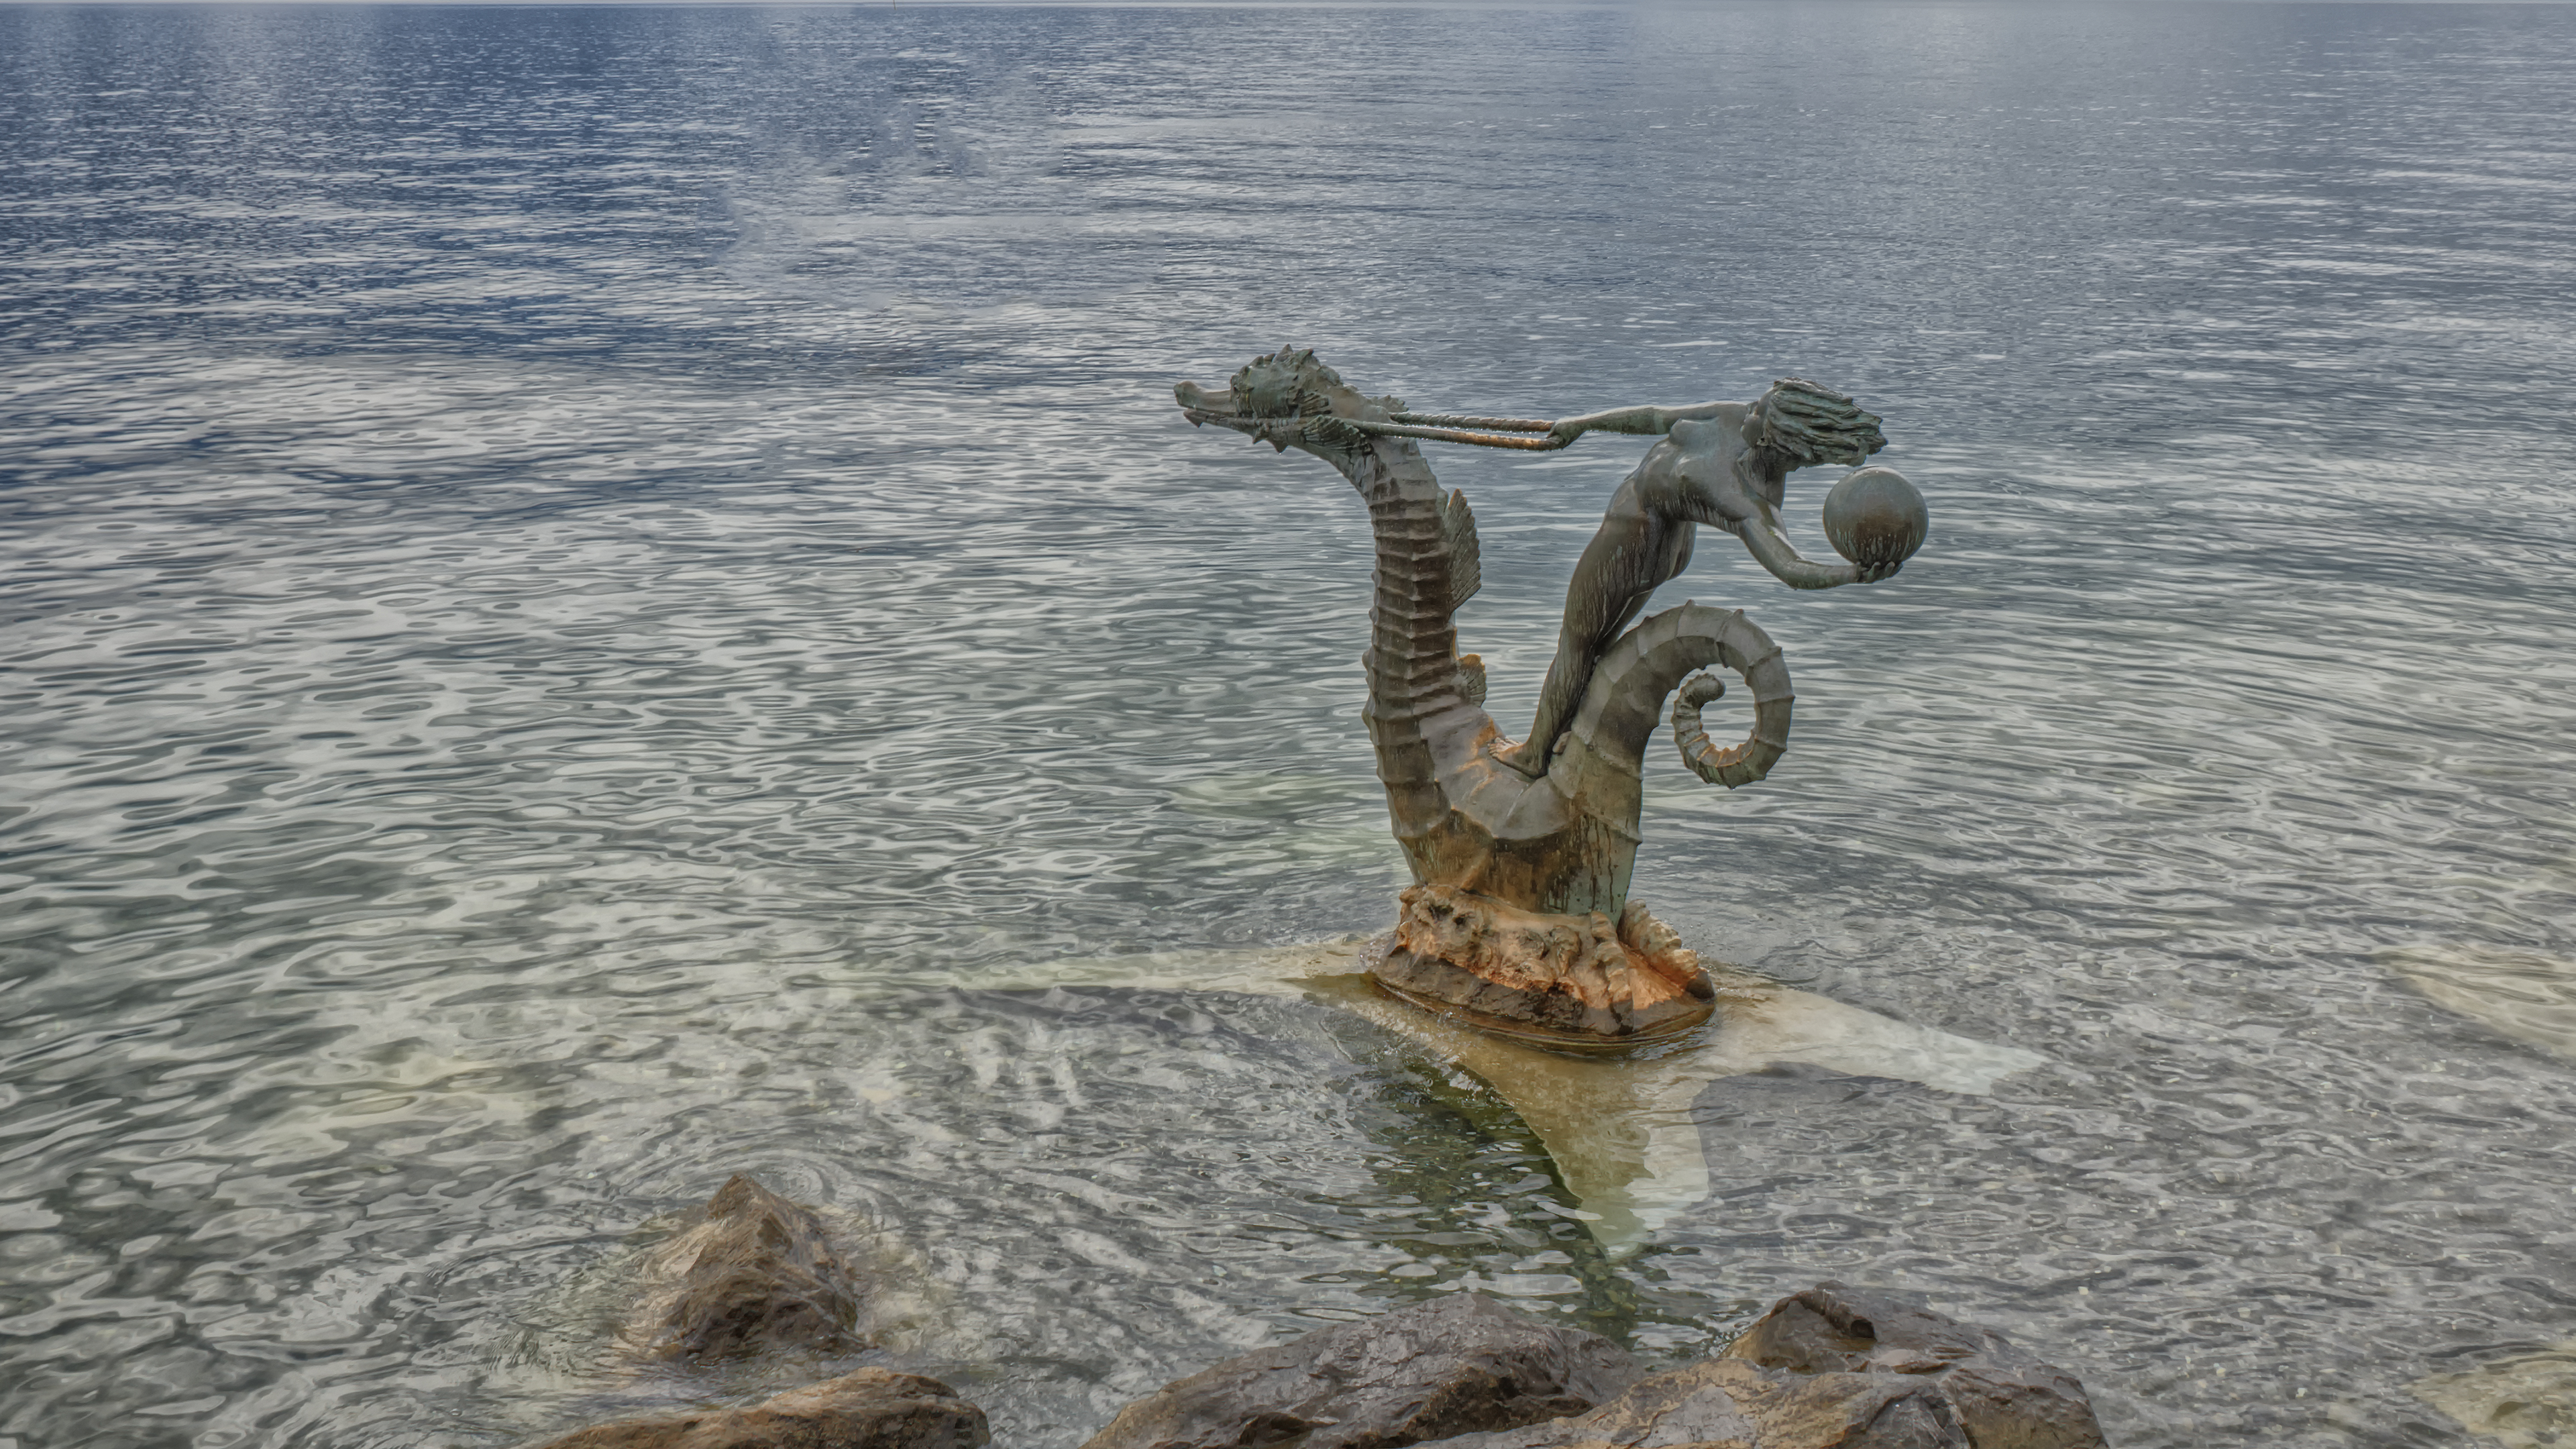 Statue of a woman riding a seahorse